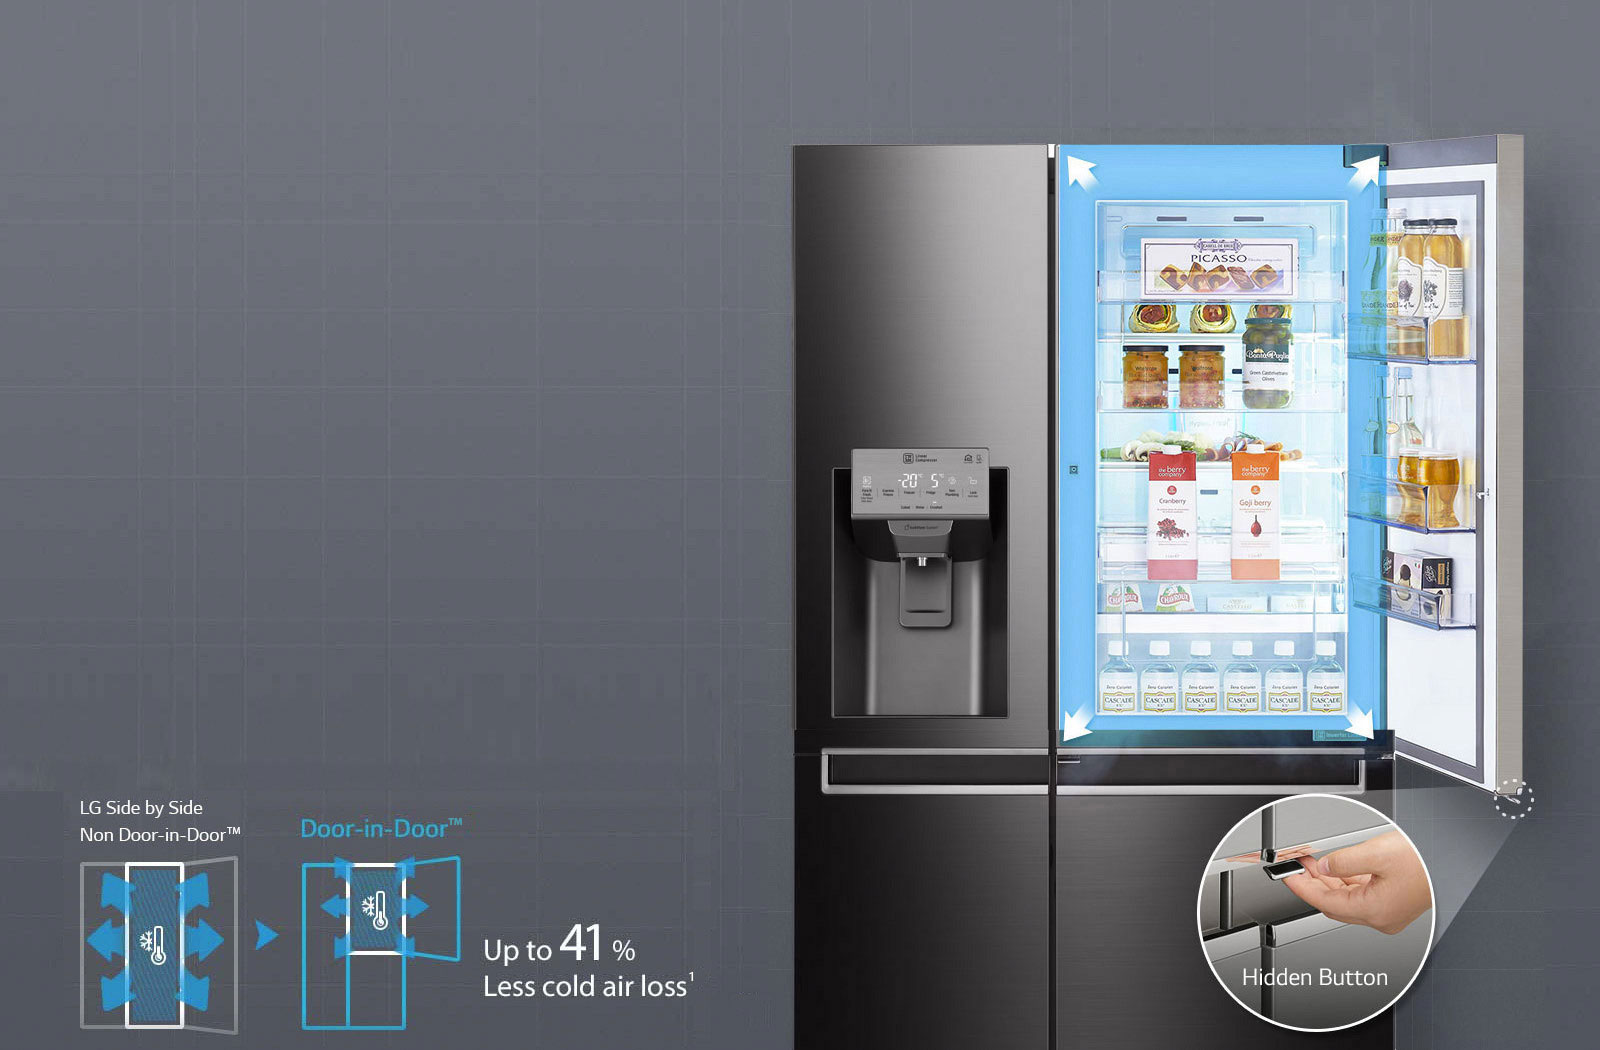 LG Fridges - Easy Access Door-in-Door®